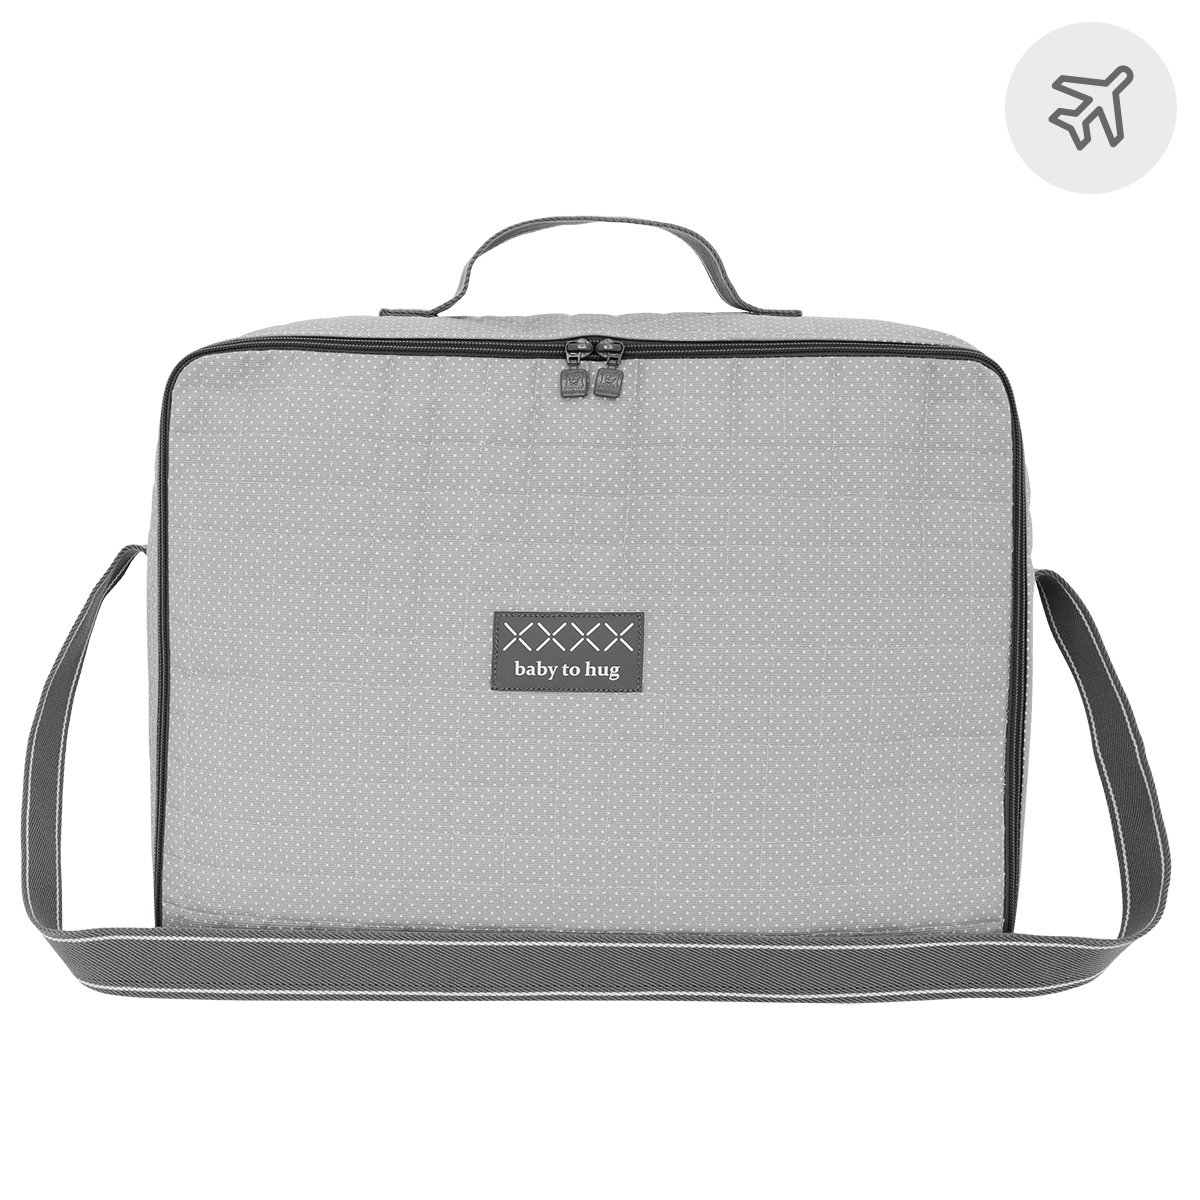 cambrass 41391 Valise Clinique RJCAM